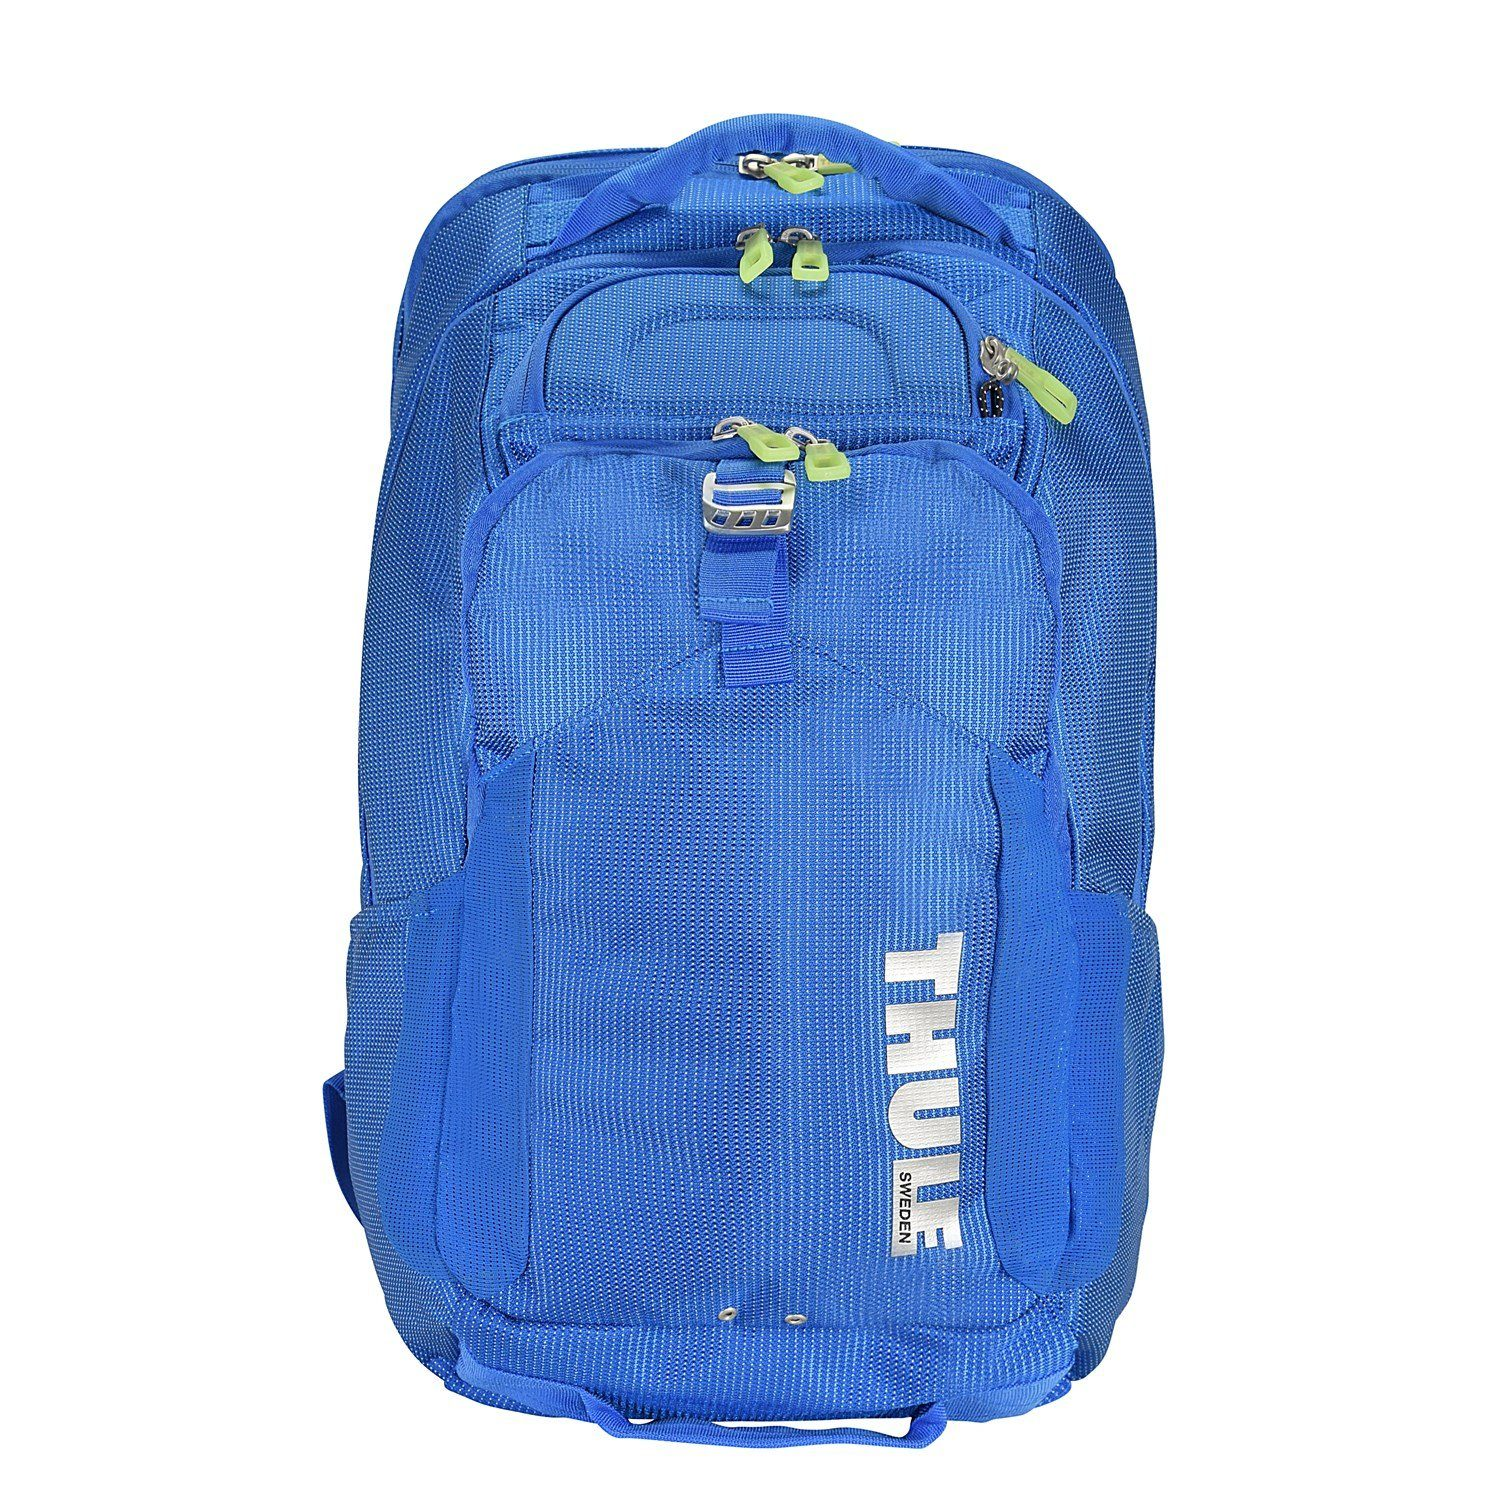 Thule Crossover Rucksack 32L 47 cm Laptopfach